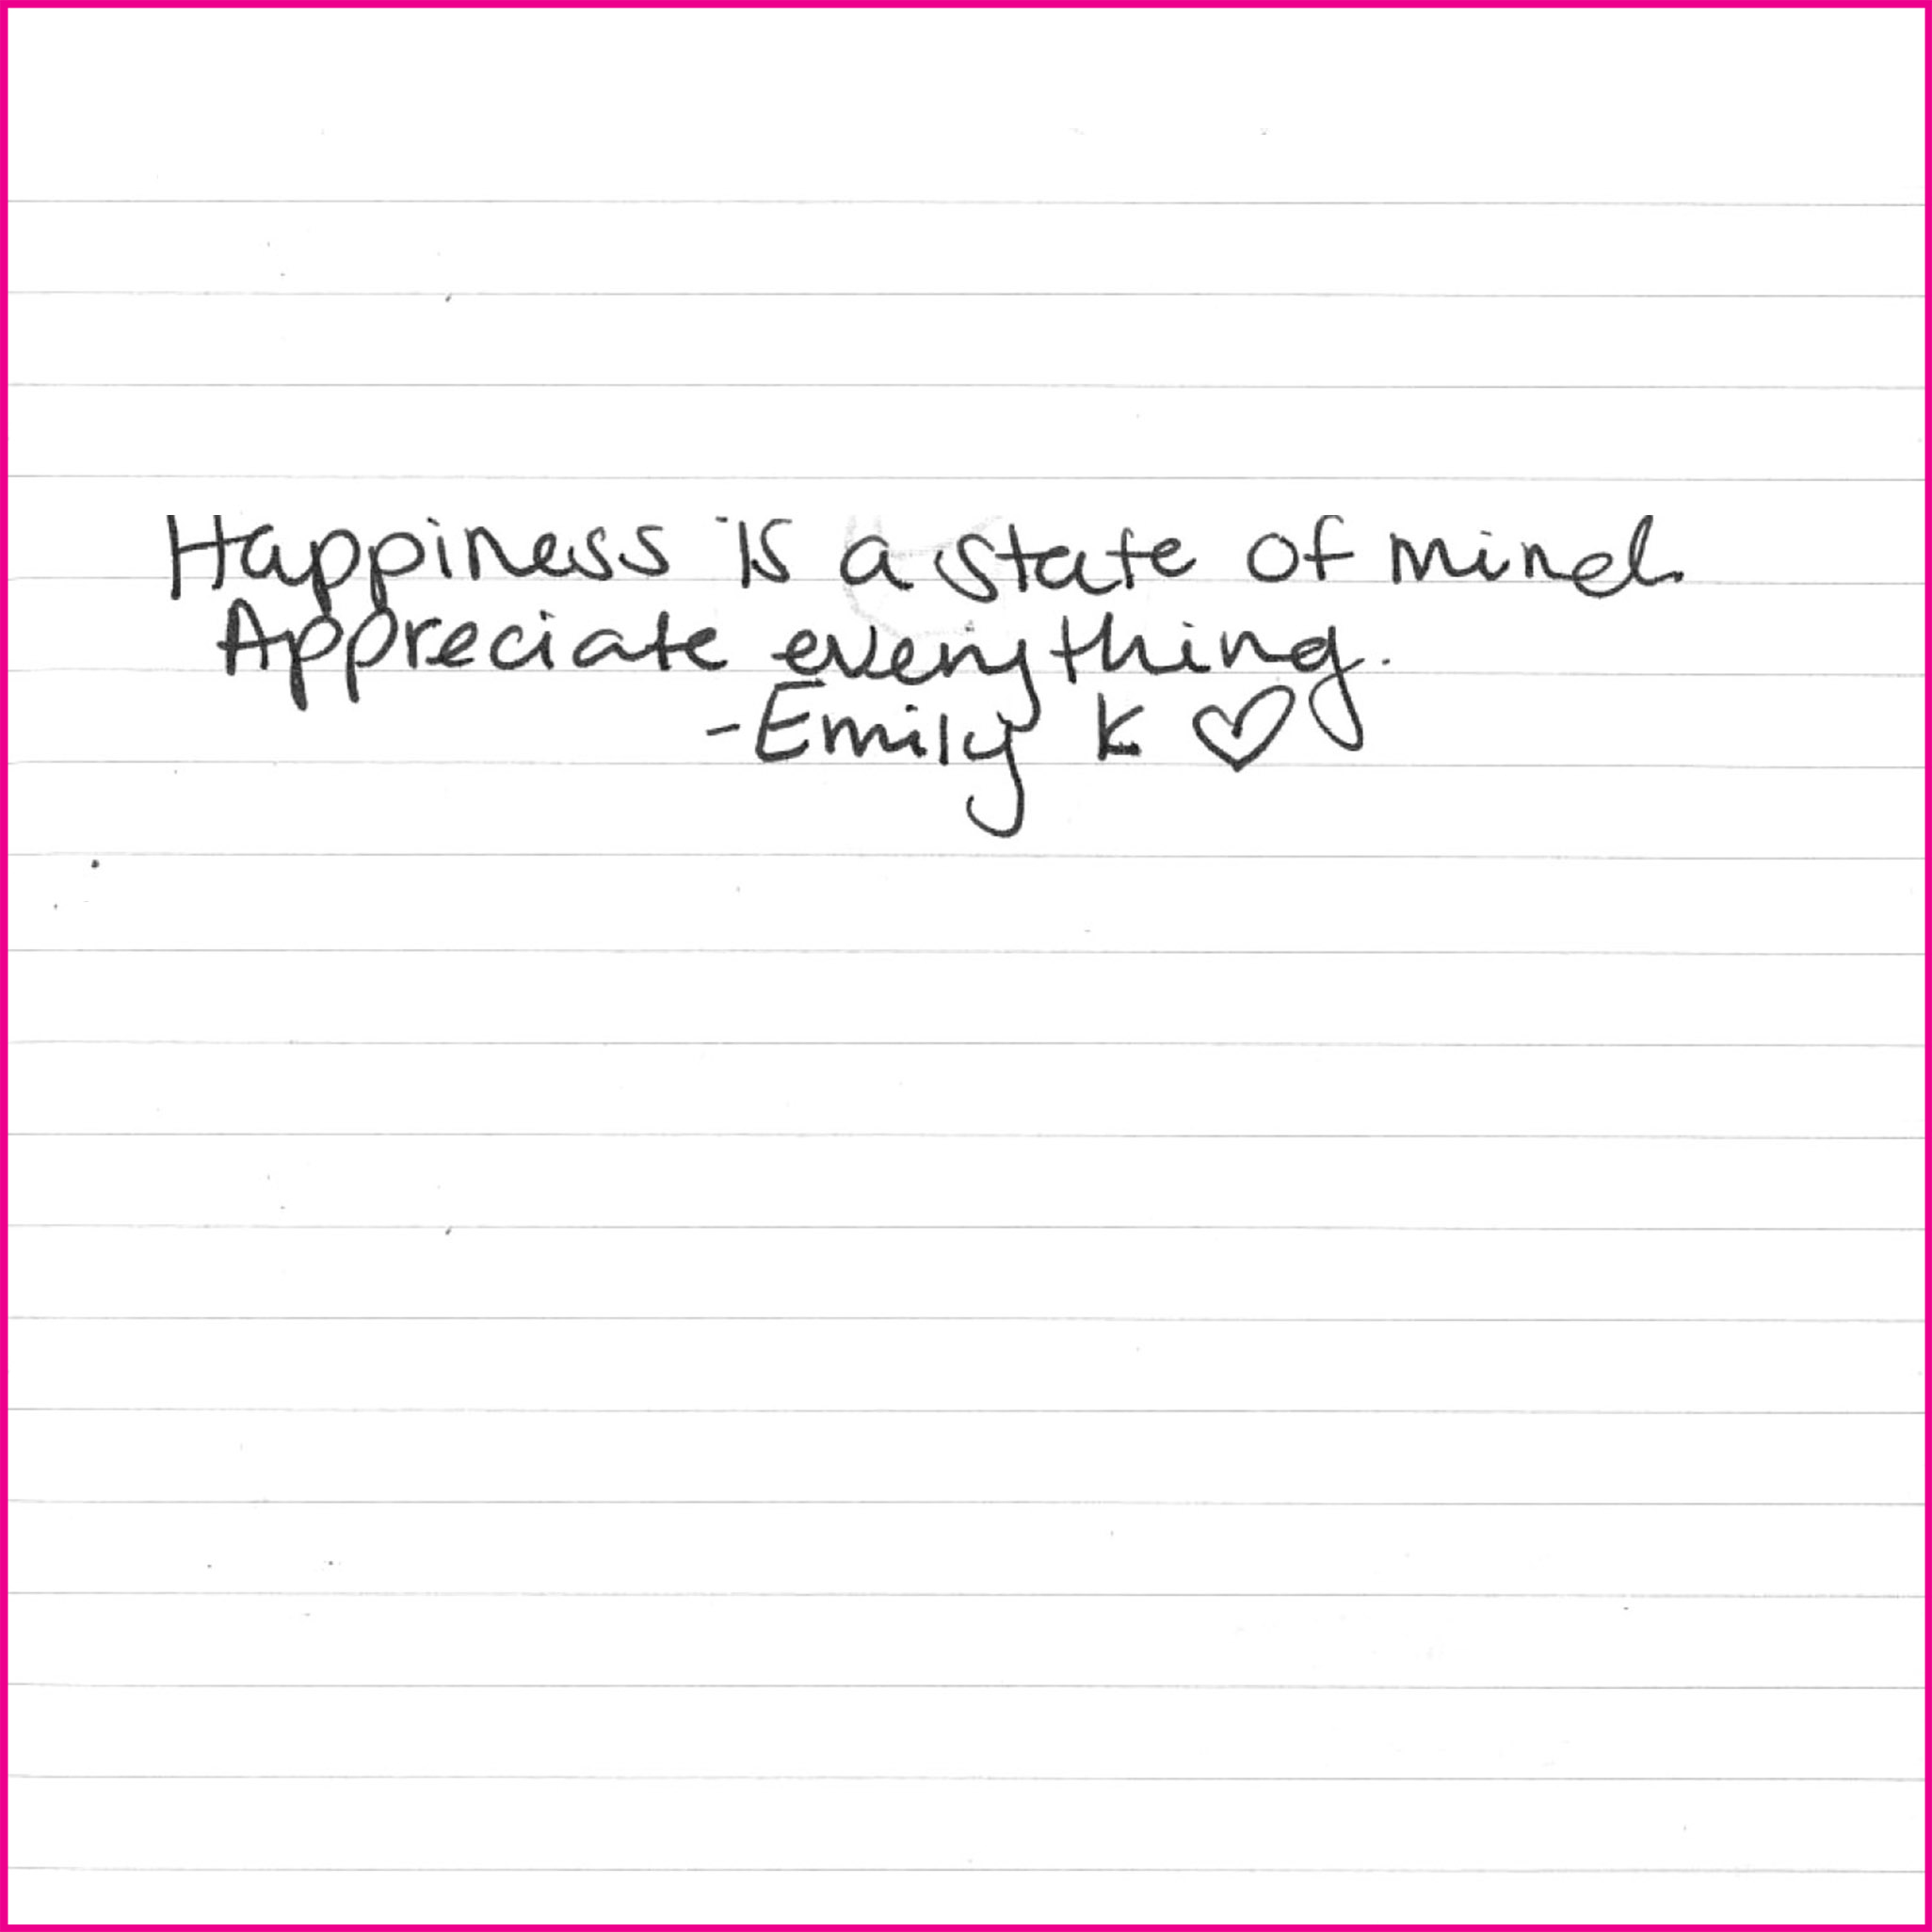 Happiness is a state of mind. Appreciate everything.